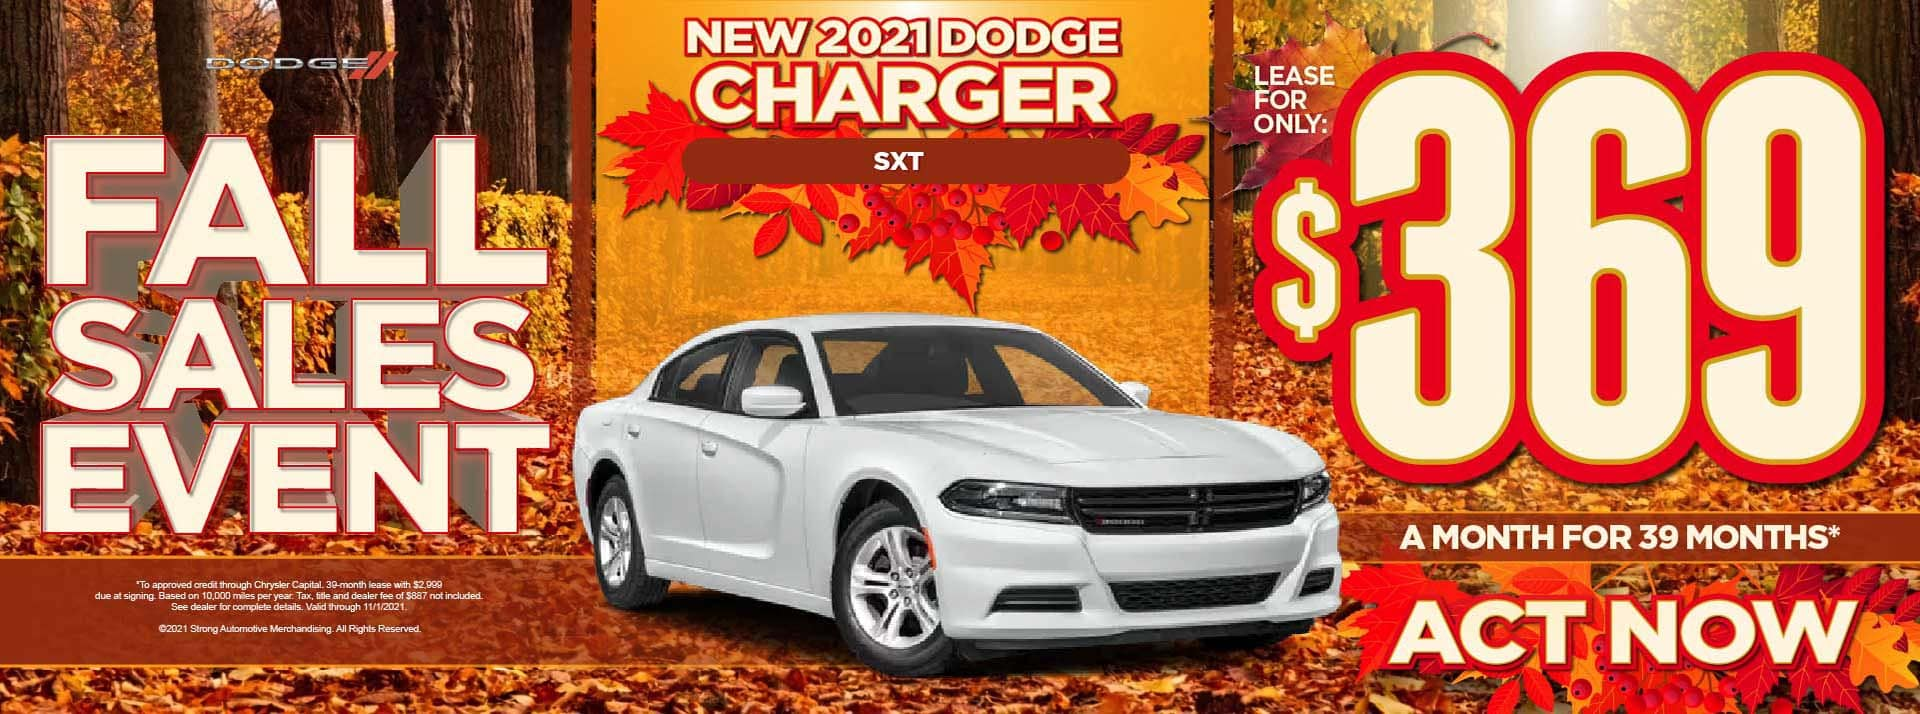 New 2021 Dodge Charger SXT - $369 / mo - ACT NOW